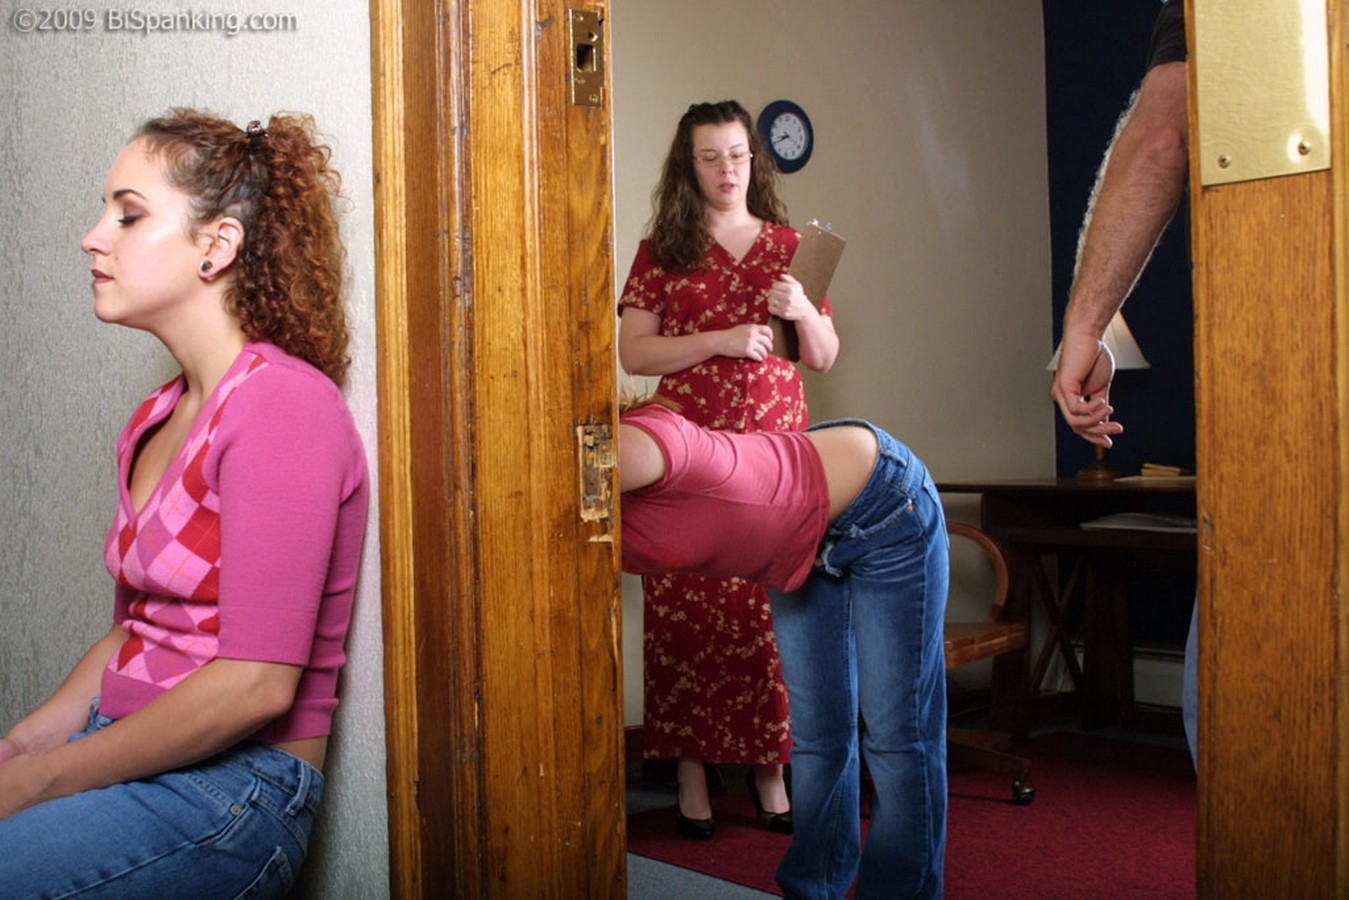 spanking models preview pictures 12